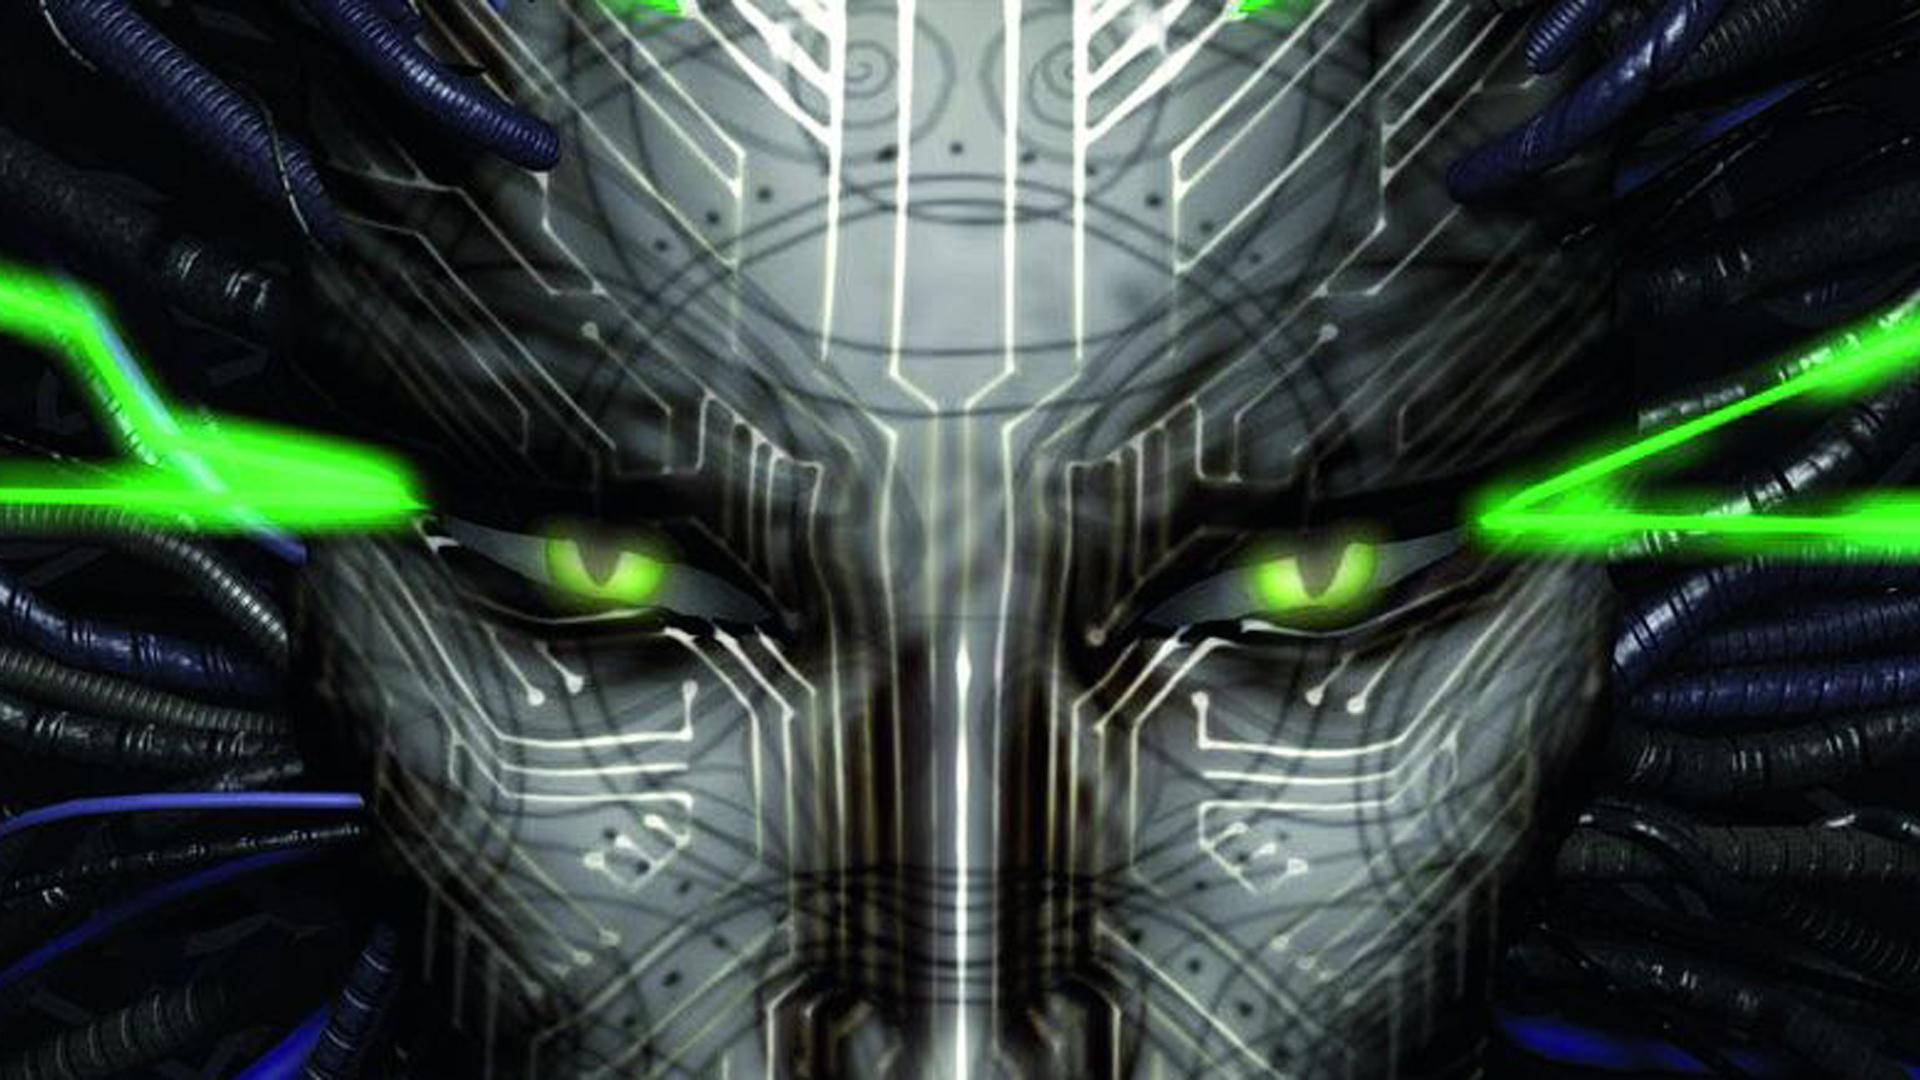 System Shock 2 console